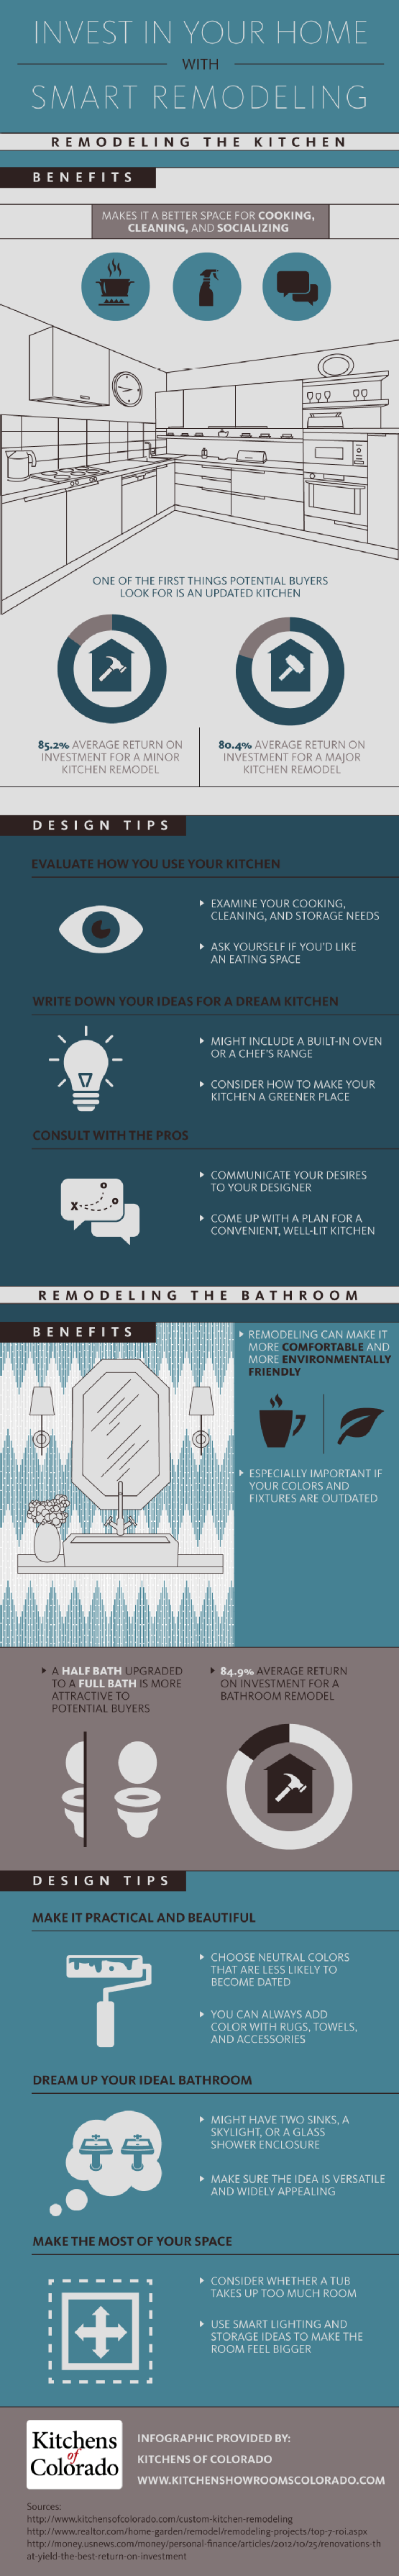 Infographic: Invest In Your Home with Smart Remodeling #infographic